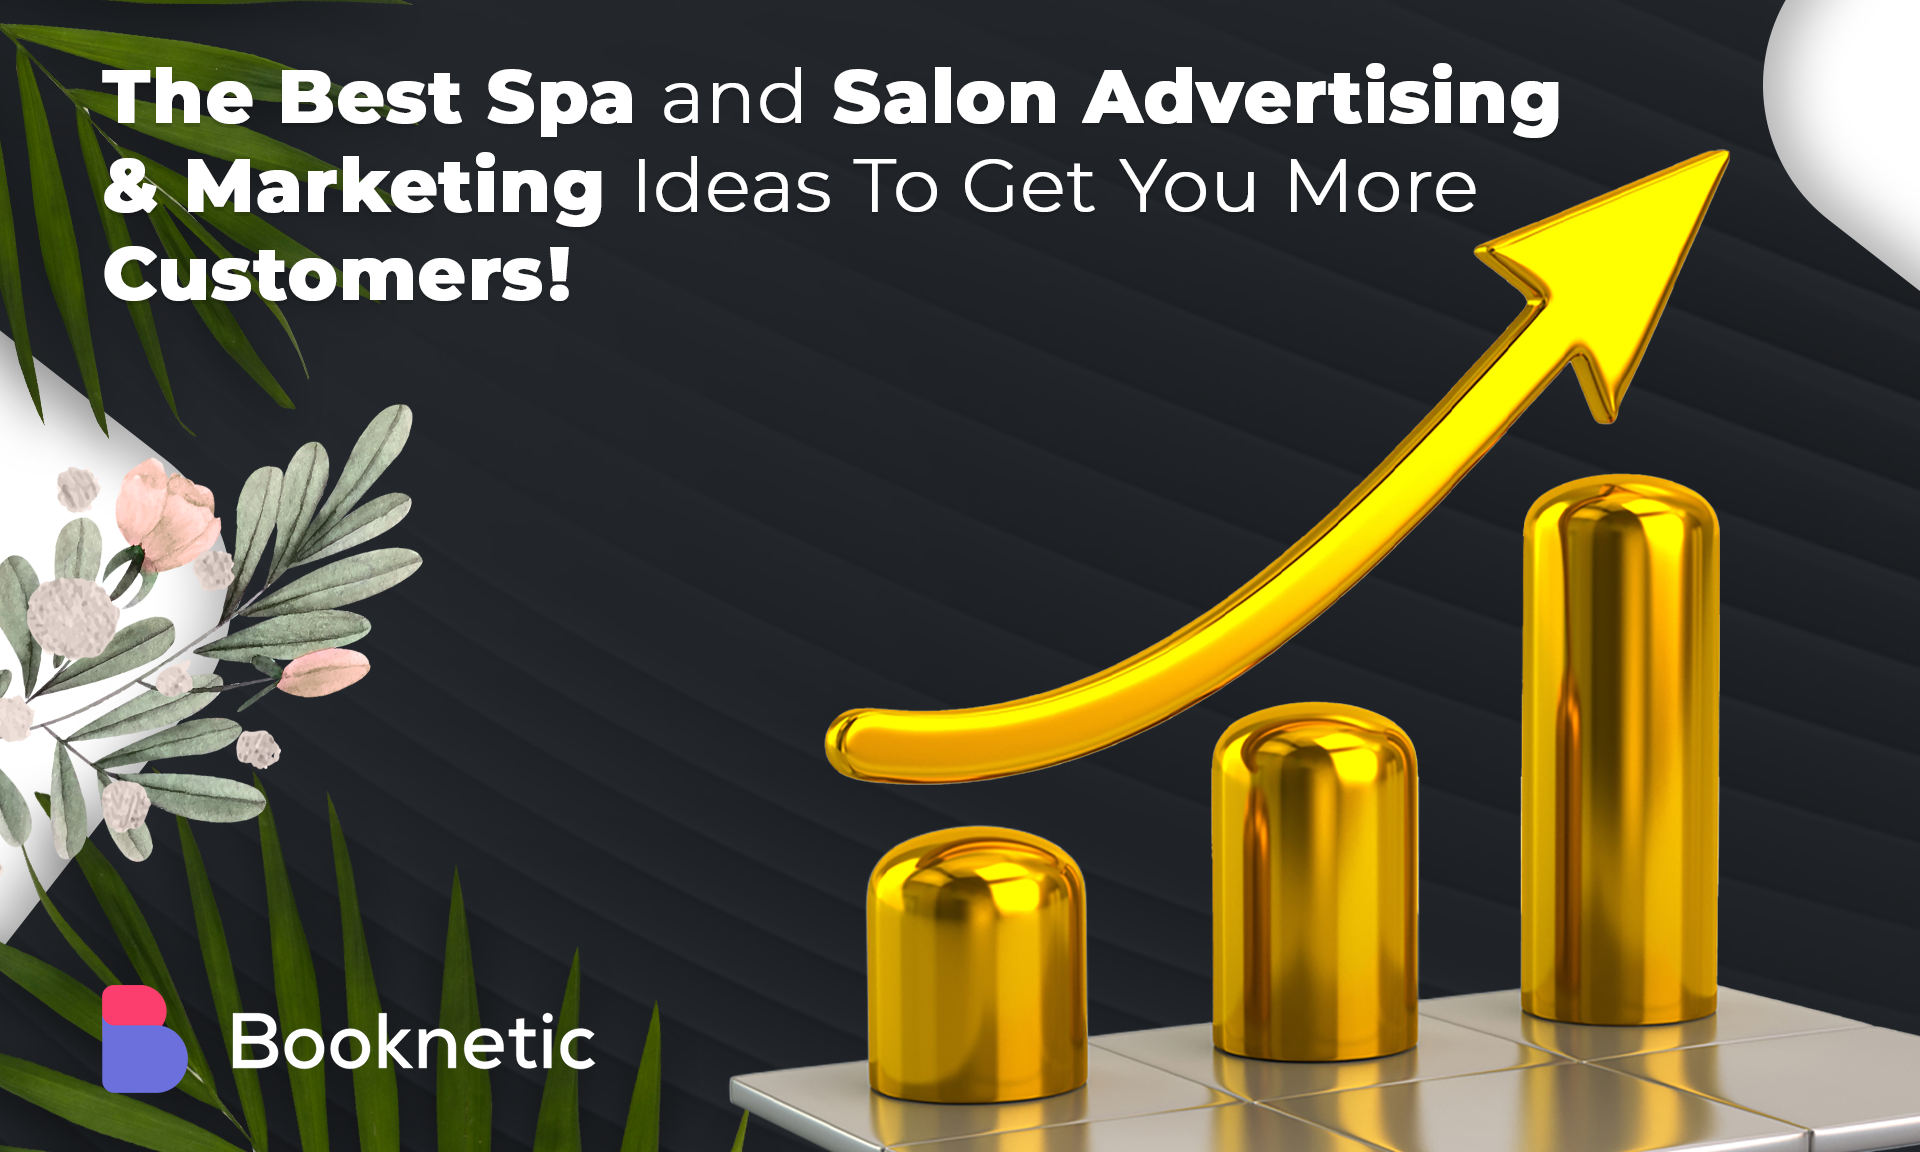 The Best Spa and Salon Advertising & Marketing Ideas To Get You More Customers